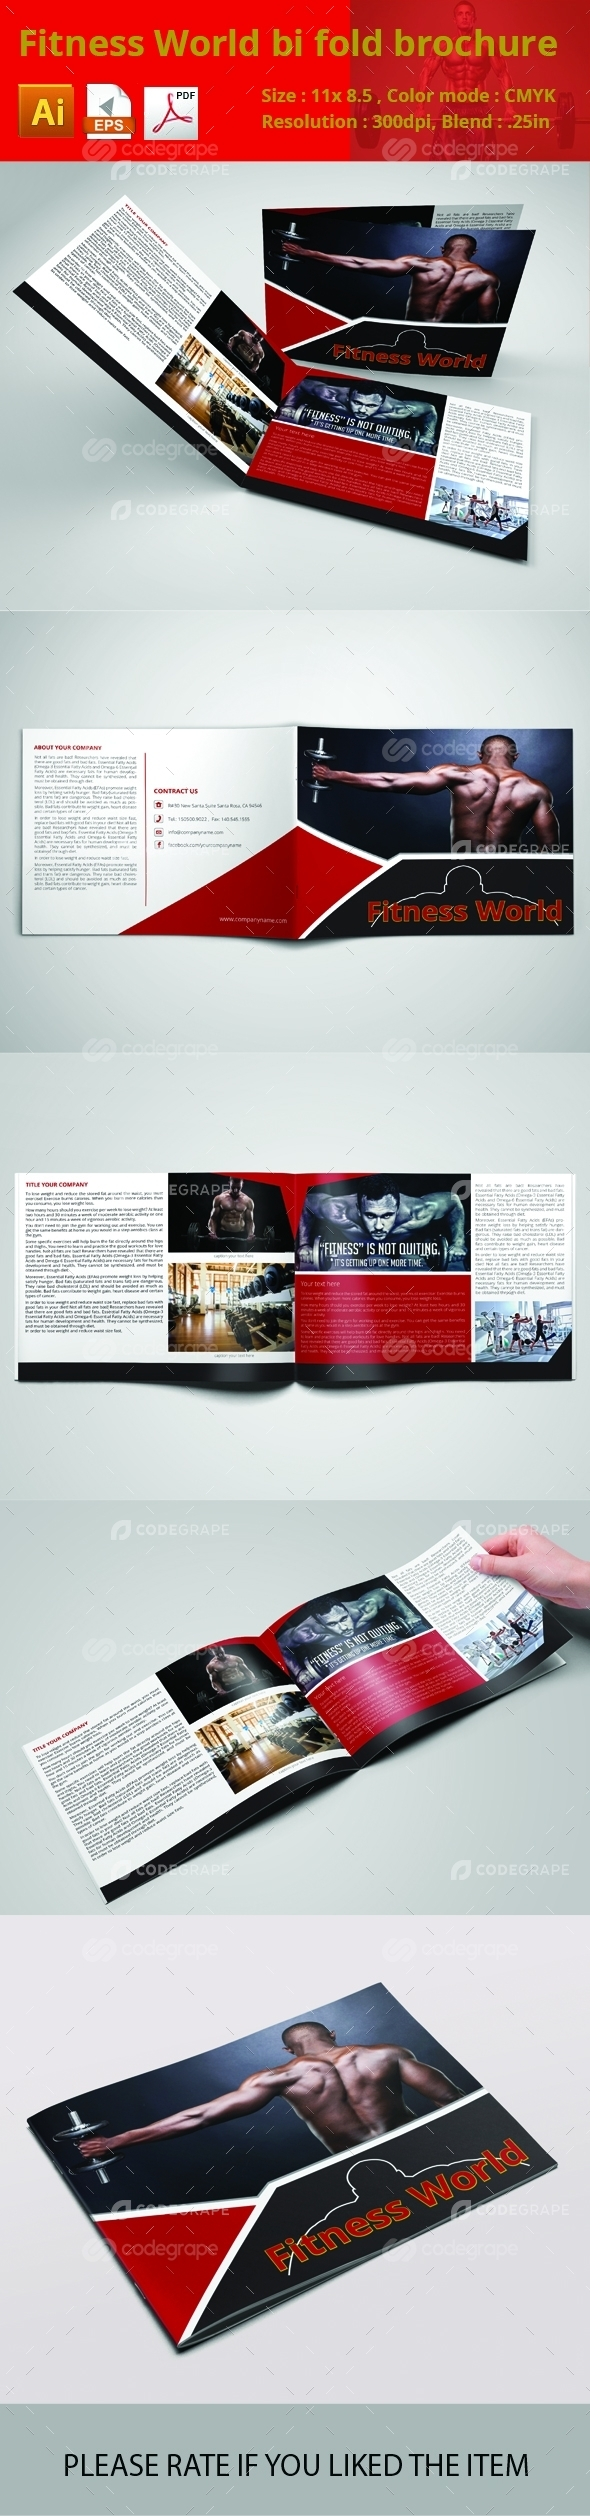 Fitness World Bi Fold Brochure